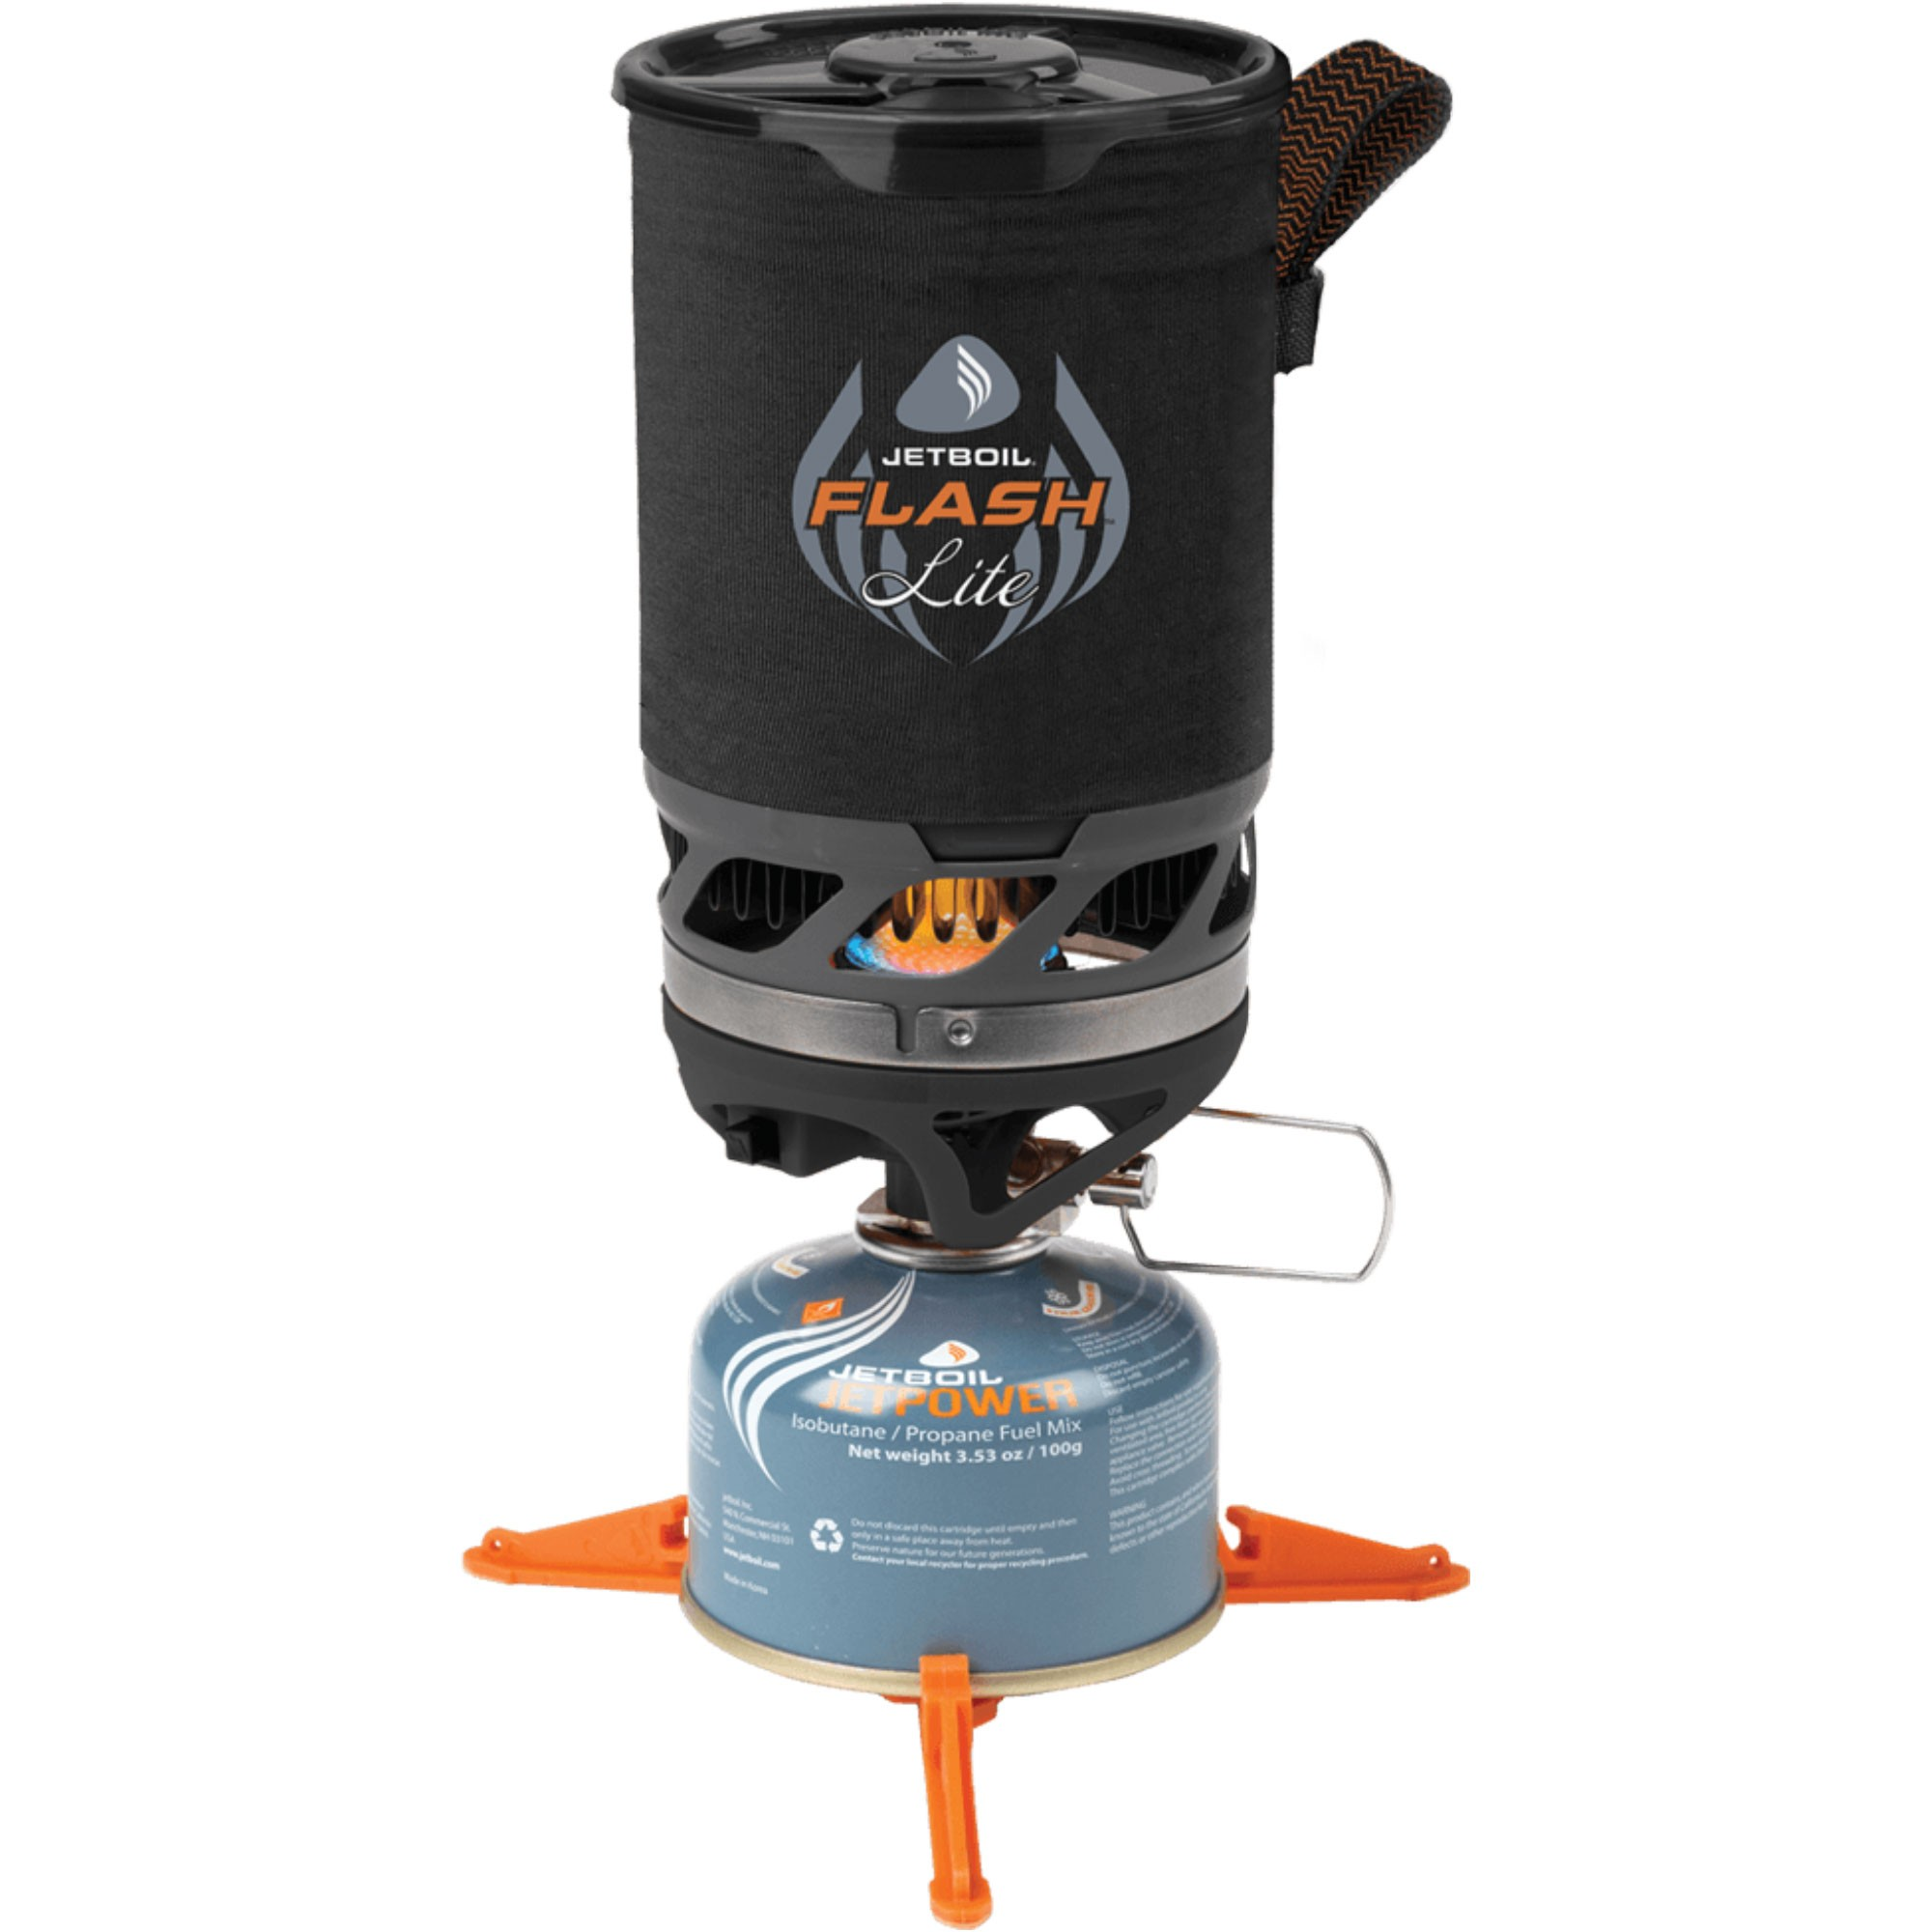 Jetboil Flash Lite Personal Cooking System Black